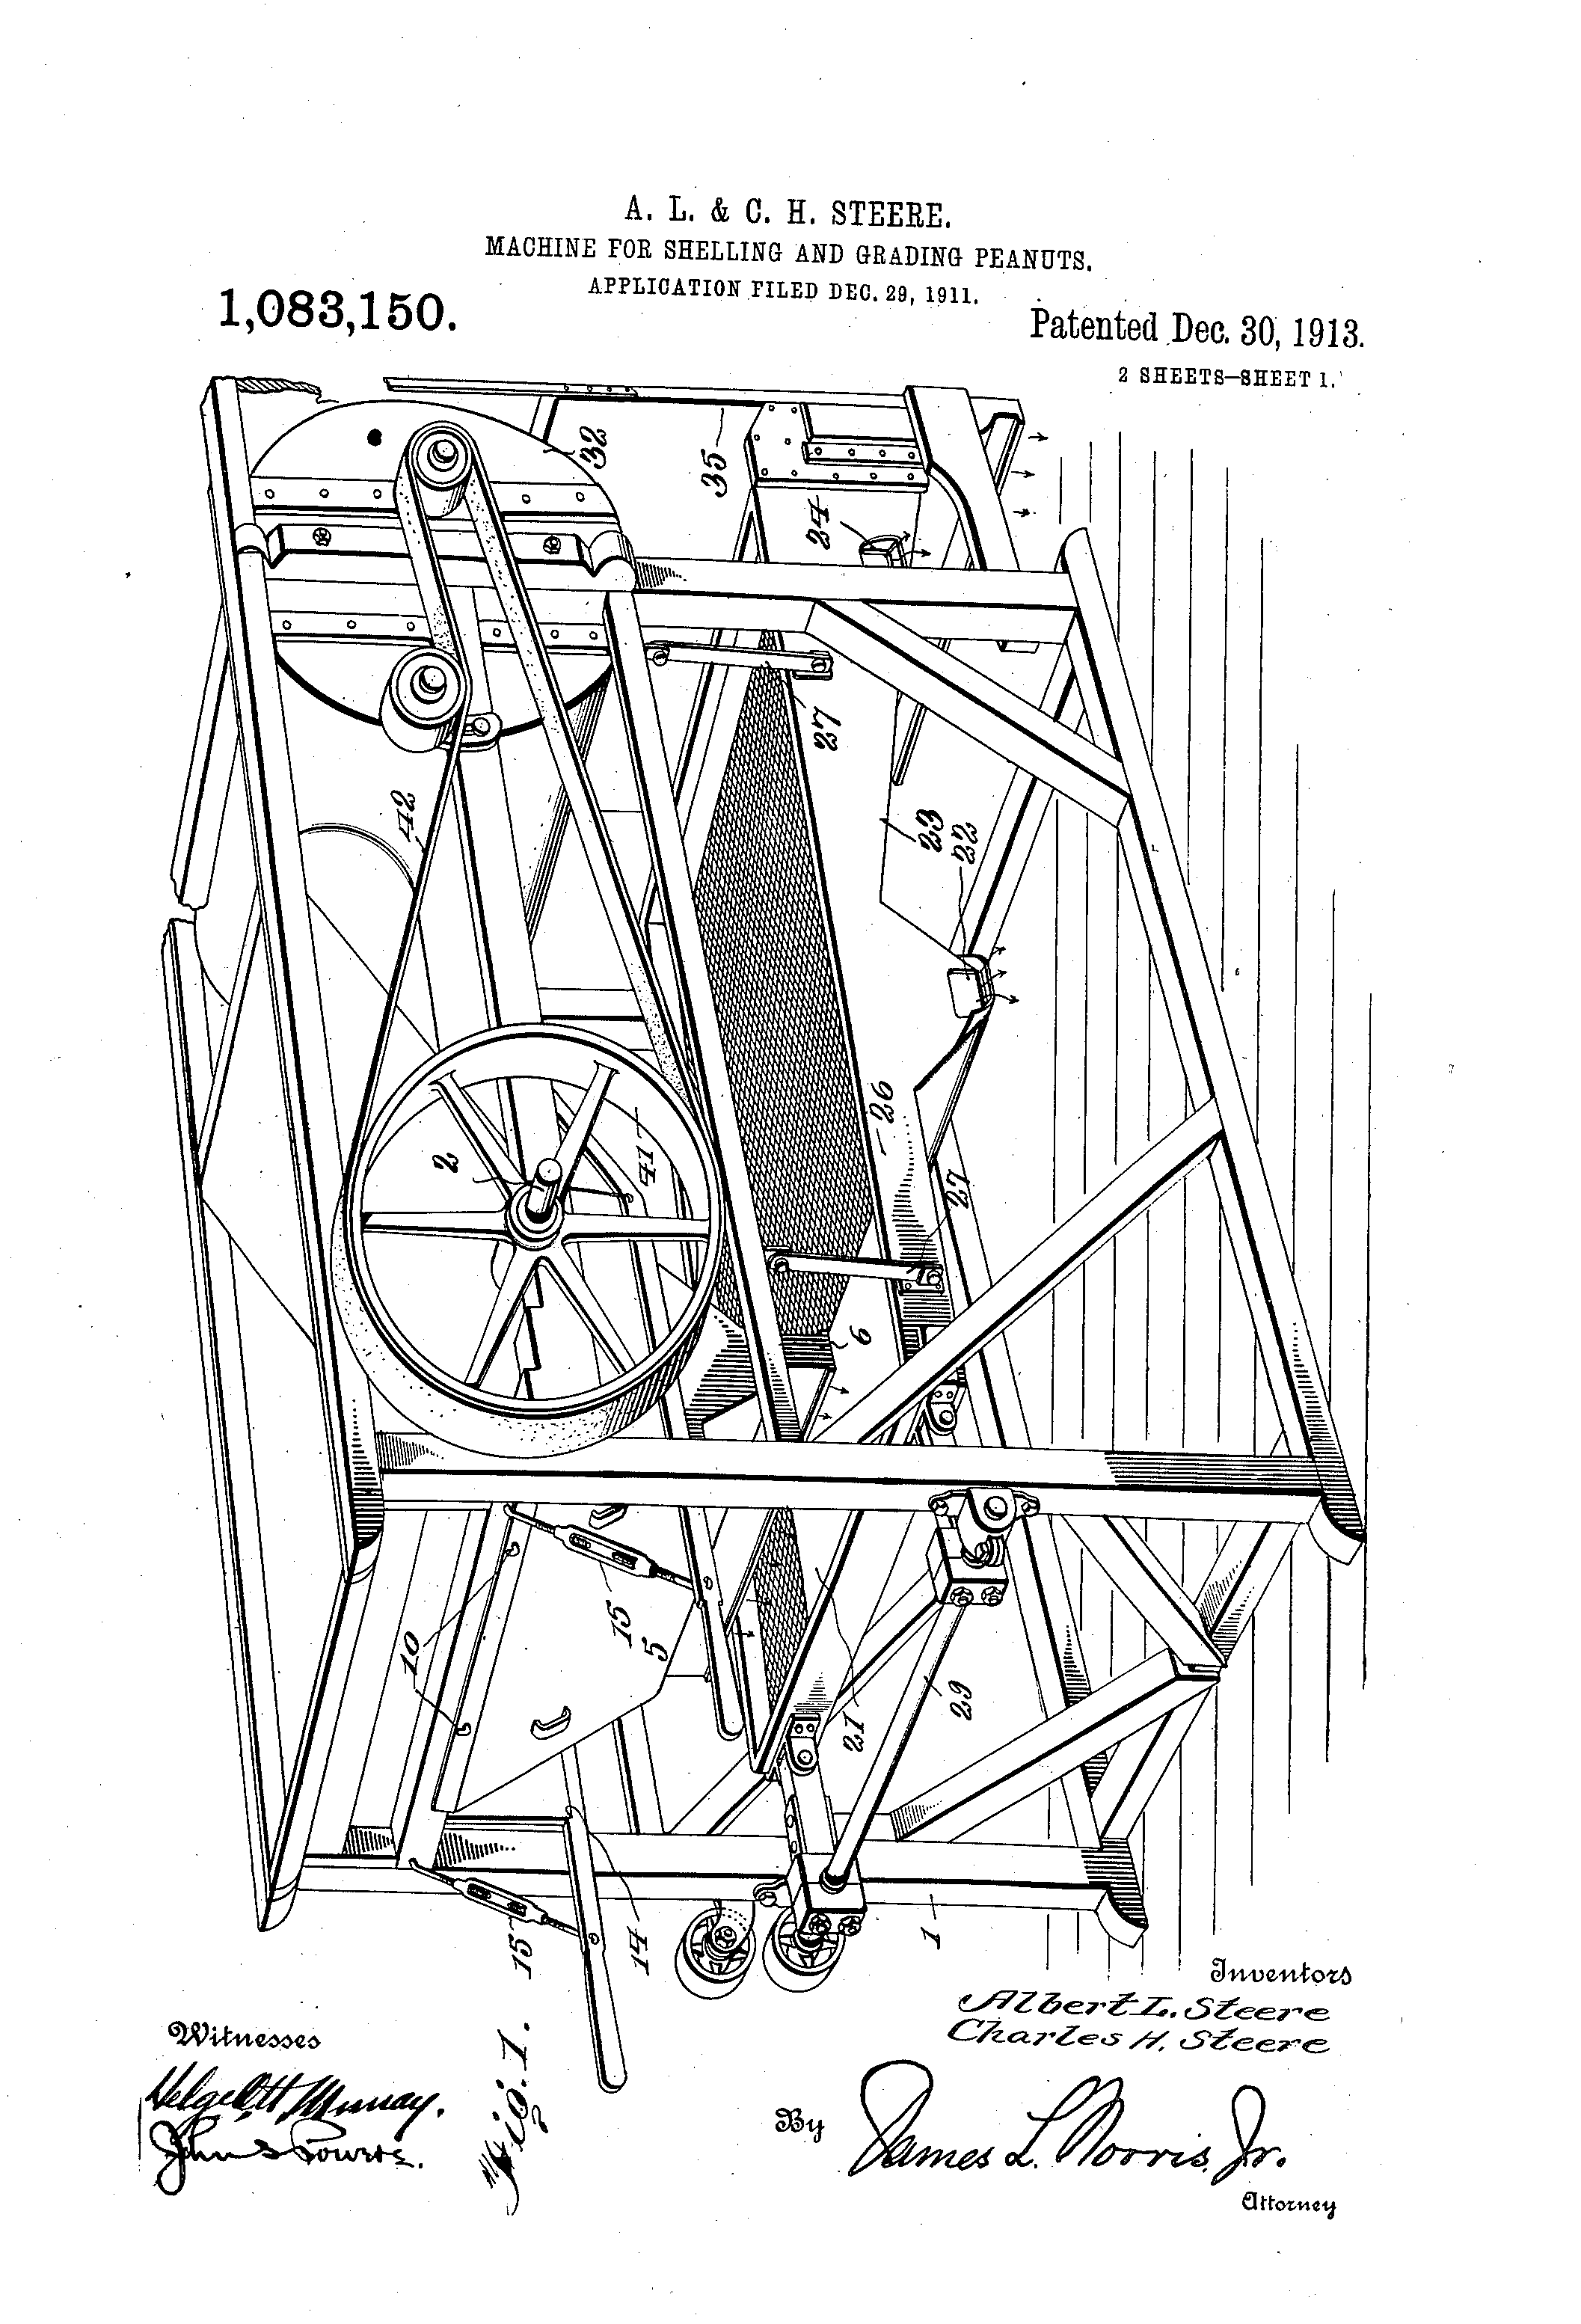 The 1913 peanut shelling and grading machine patented by Albert and Charles Steere.